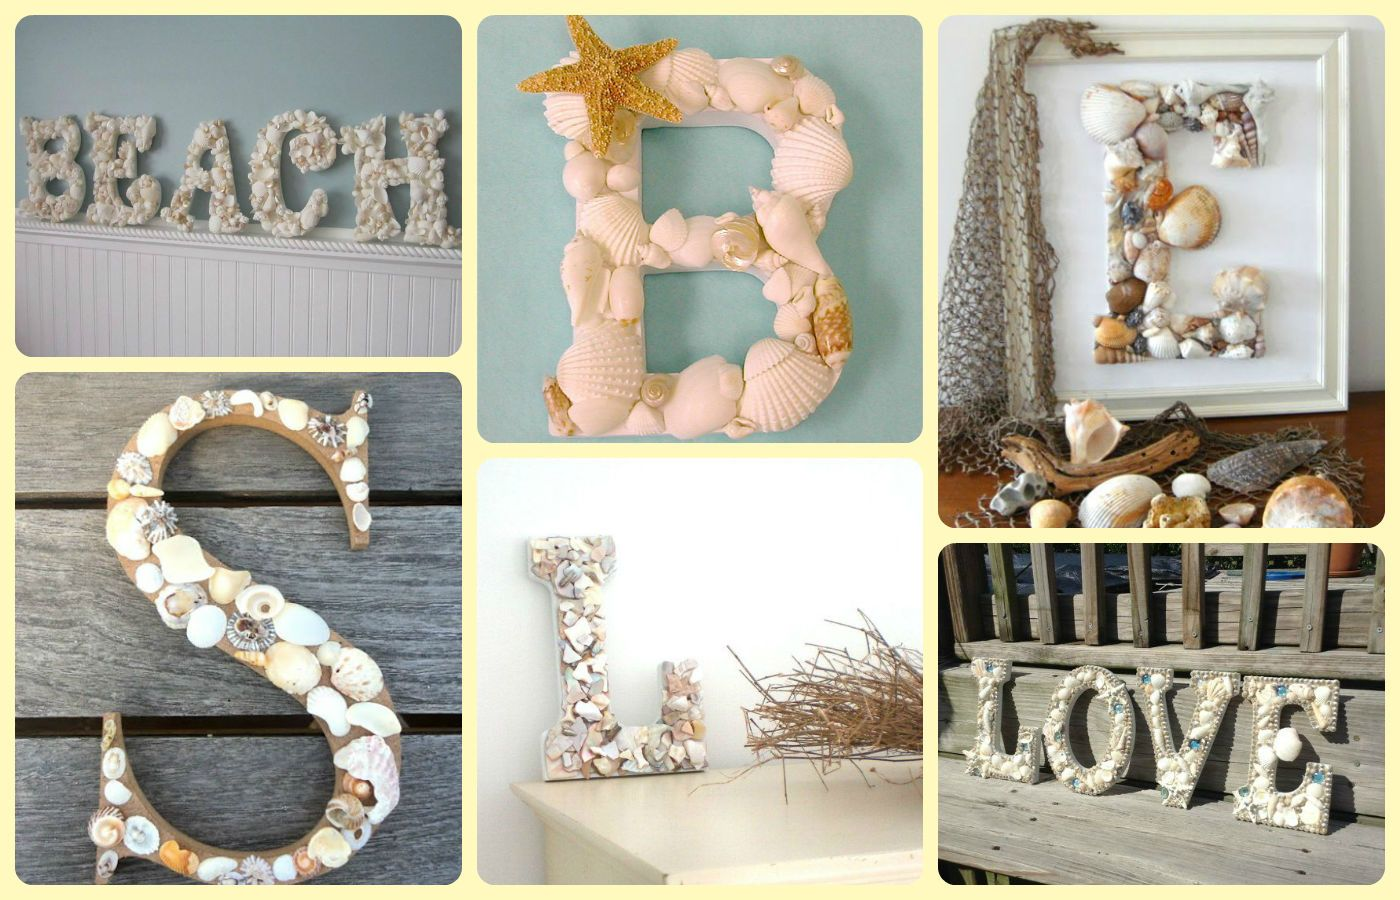 Fabulous Home Decor Ideas With Shells And Starfish Letters From Shells Decoration Crafts Shells Summer Crafty Projects Crafts Decor